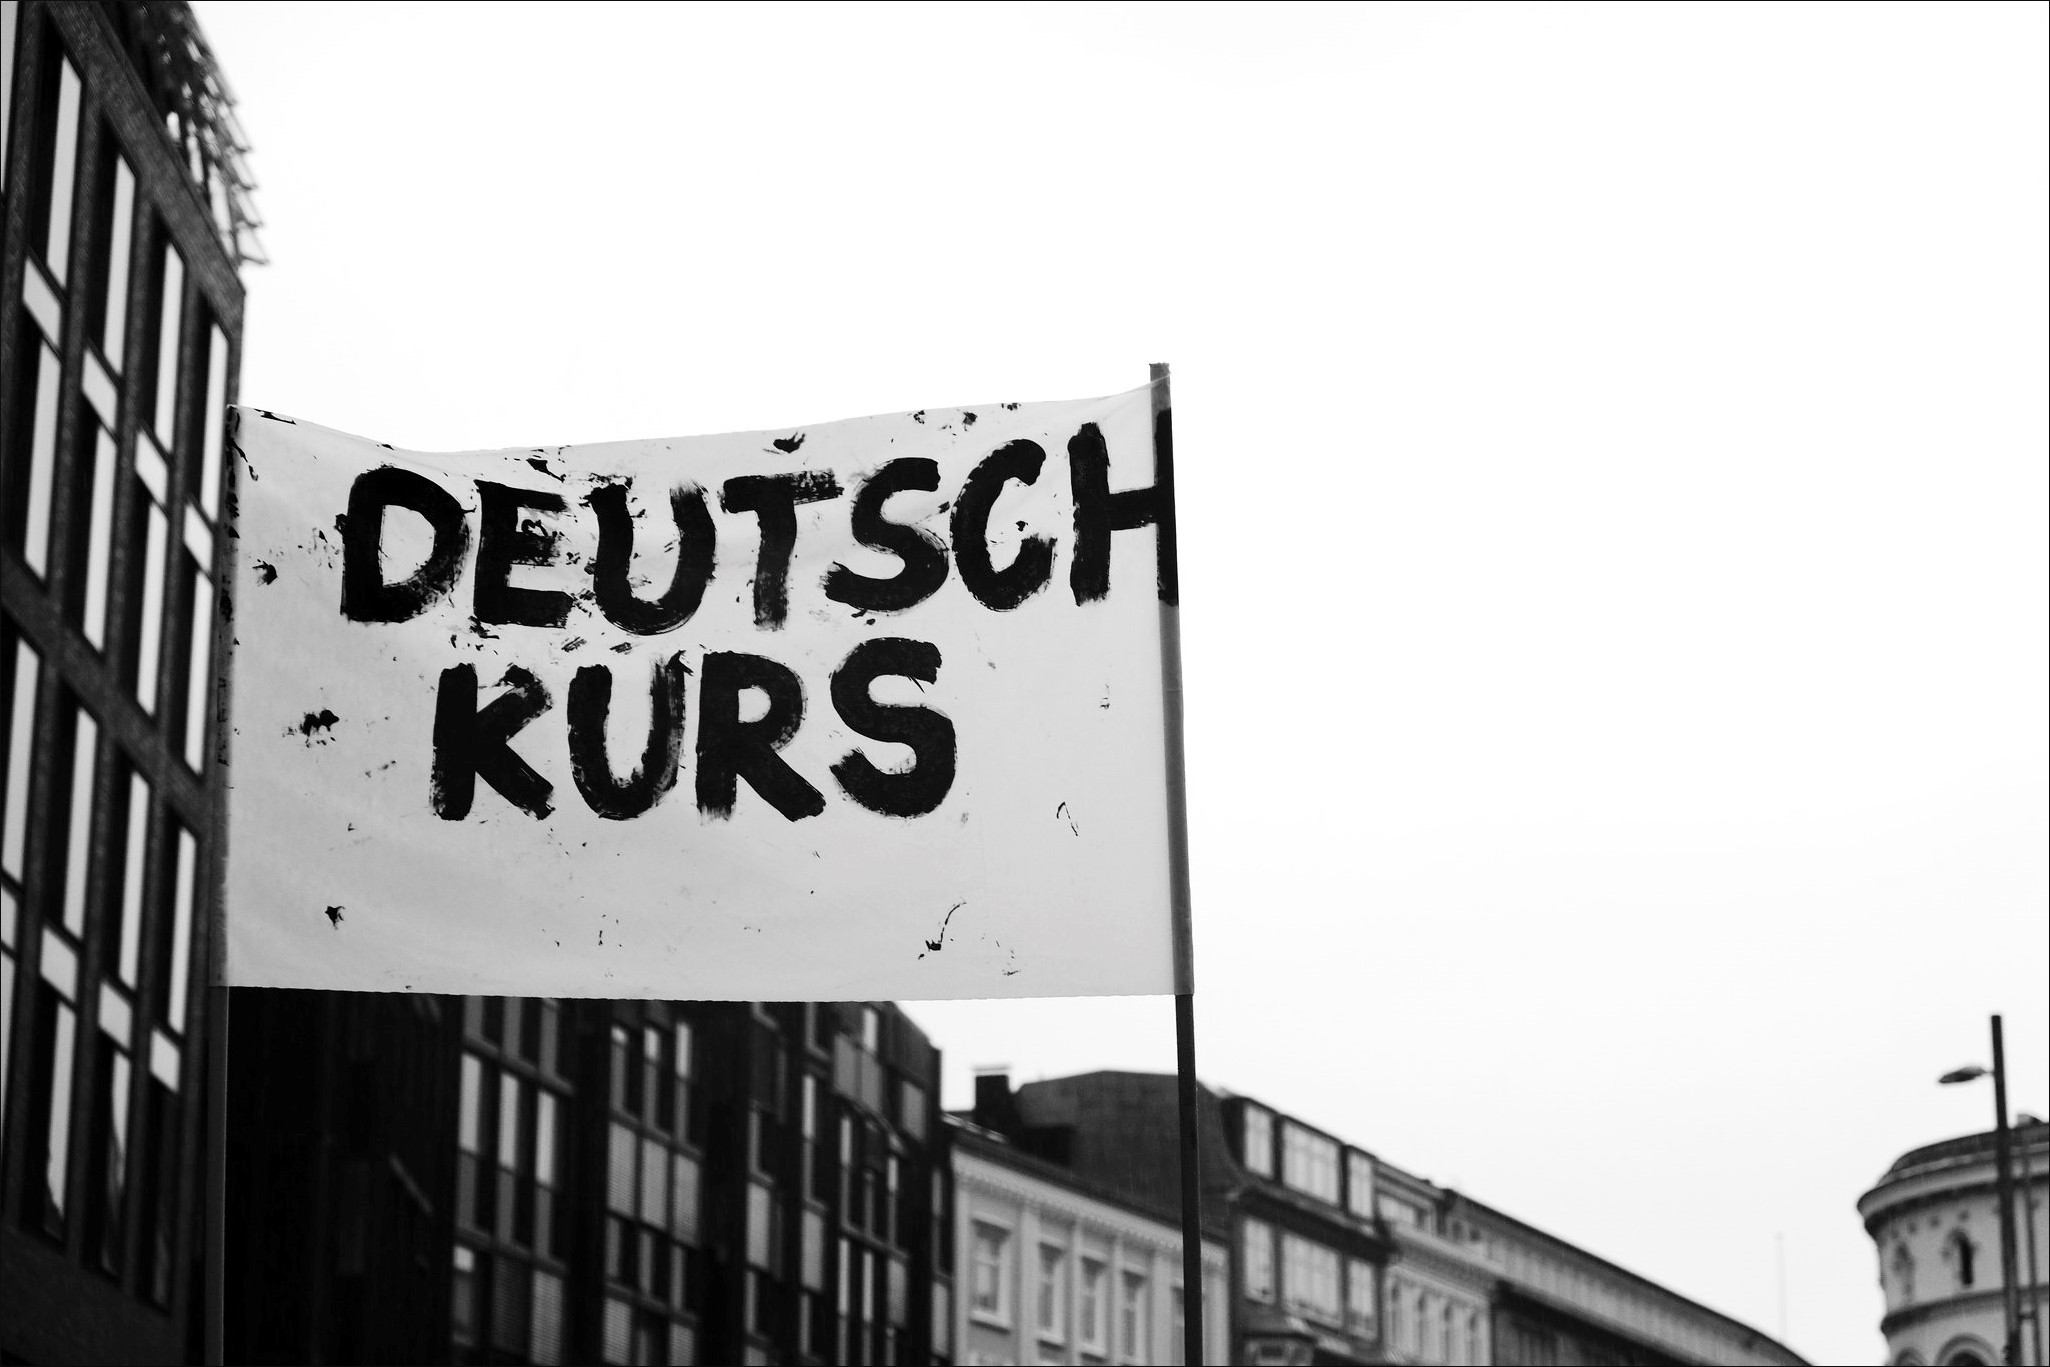 Black and white photo. A white banner with the word